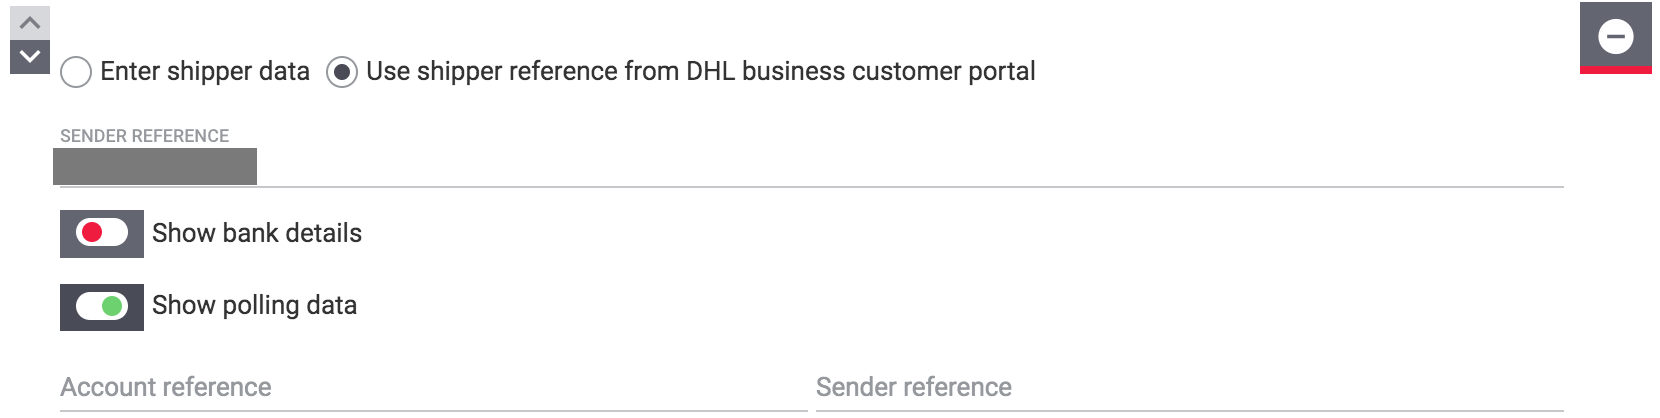 dhl assistant show polling data